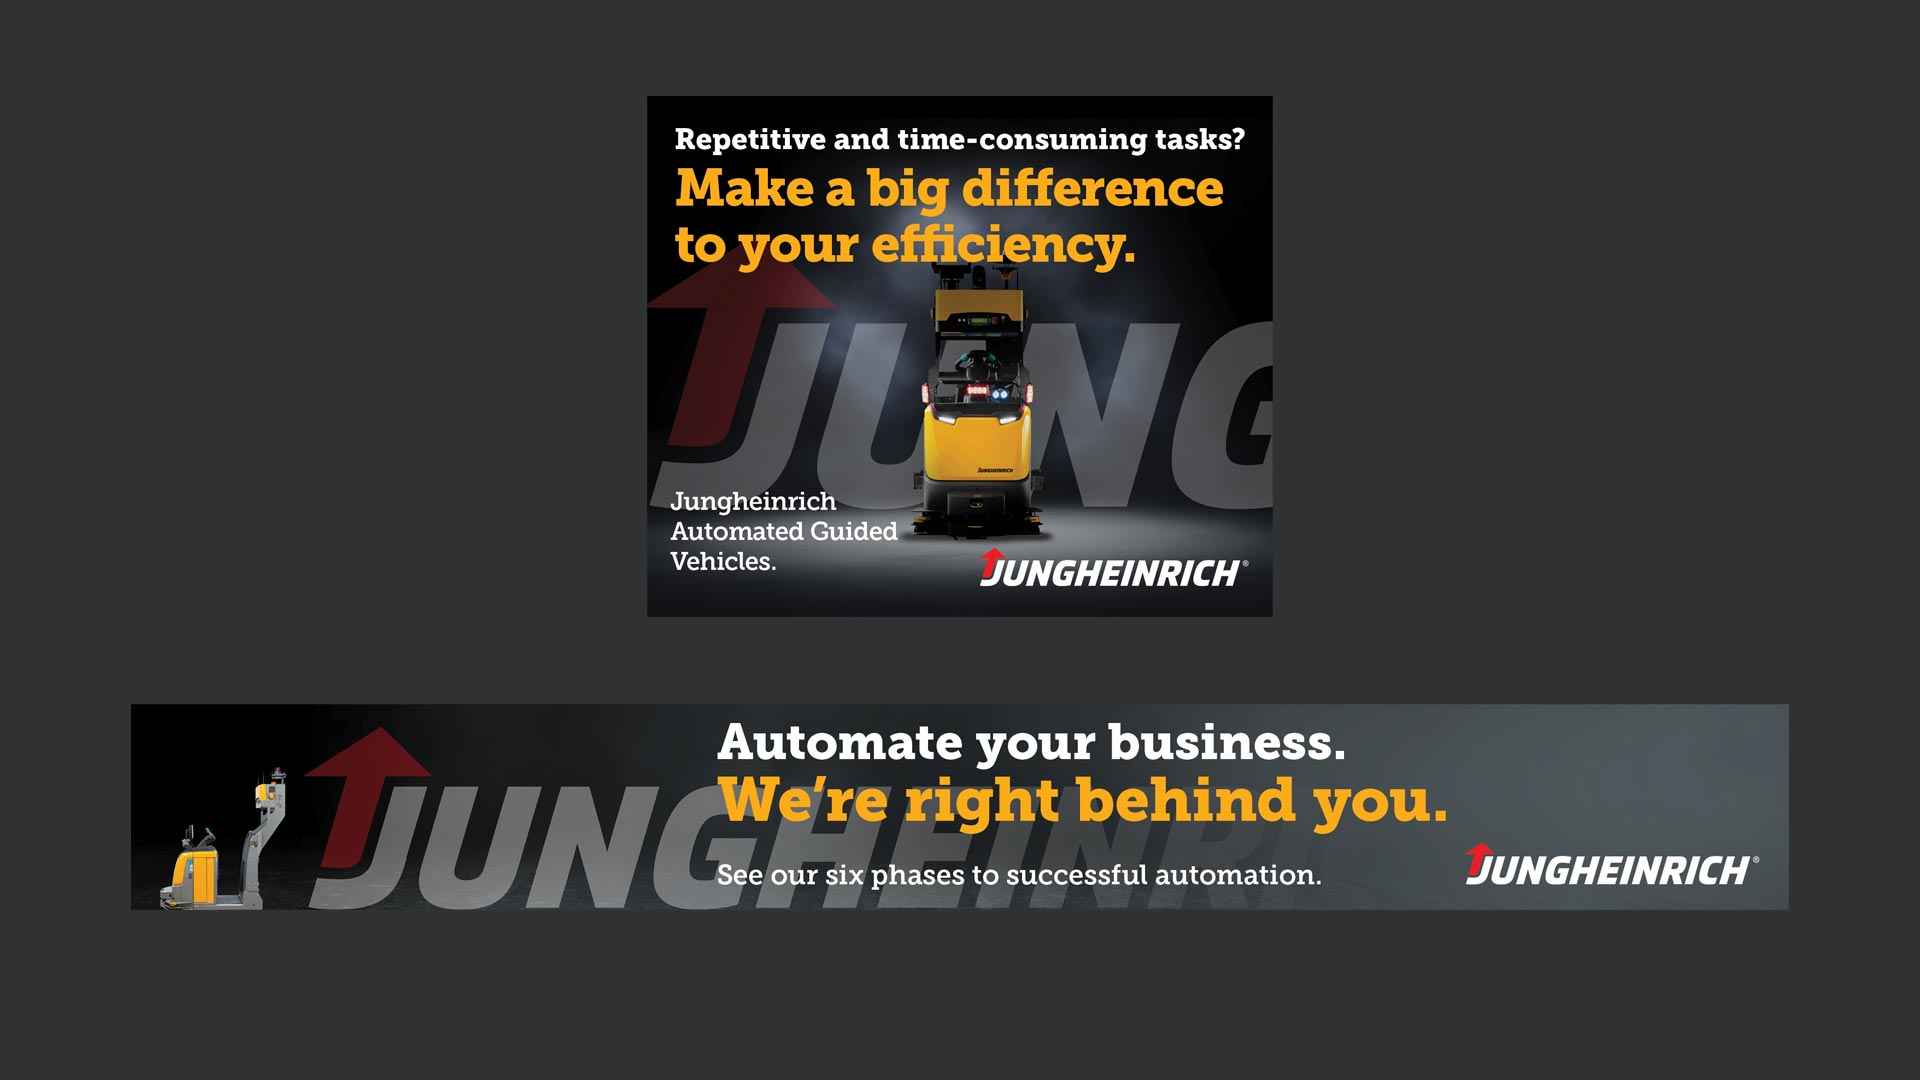 Jungheinrich campaign - we're right behind you